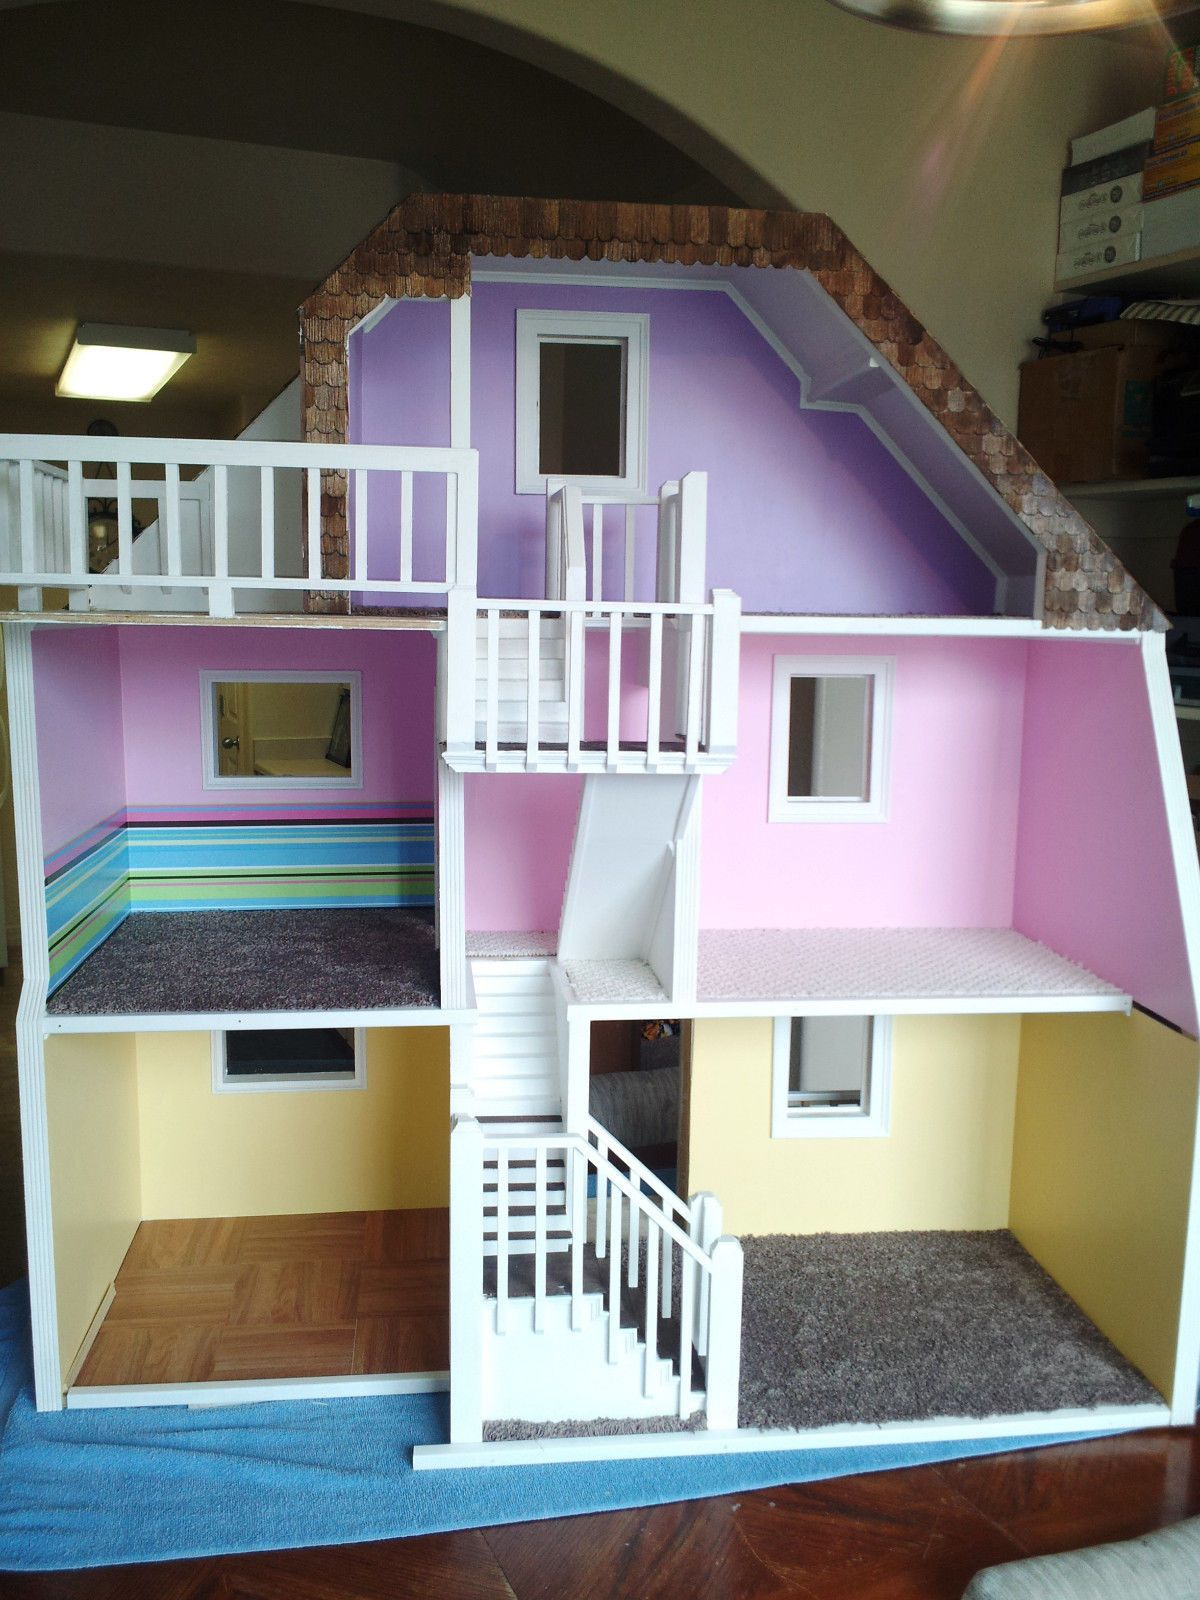 3 Story Custom Made Wood Barbie Doll House Wooden Dream Dollhouse New Sturdy Ebay Doll House Plans Diy Barbie House Barbie House